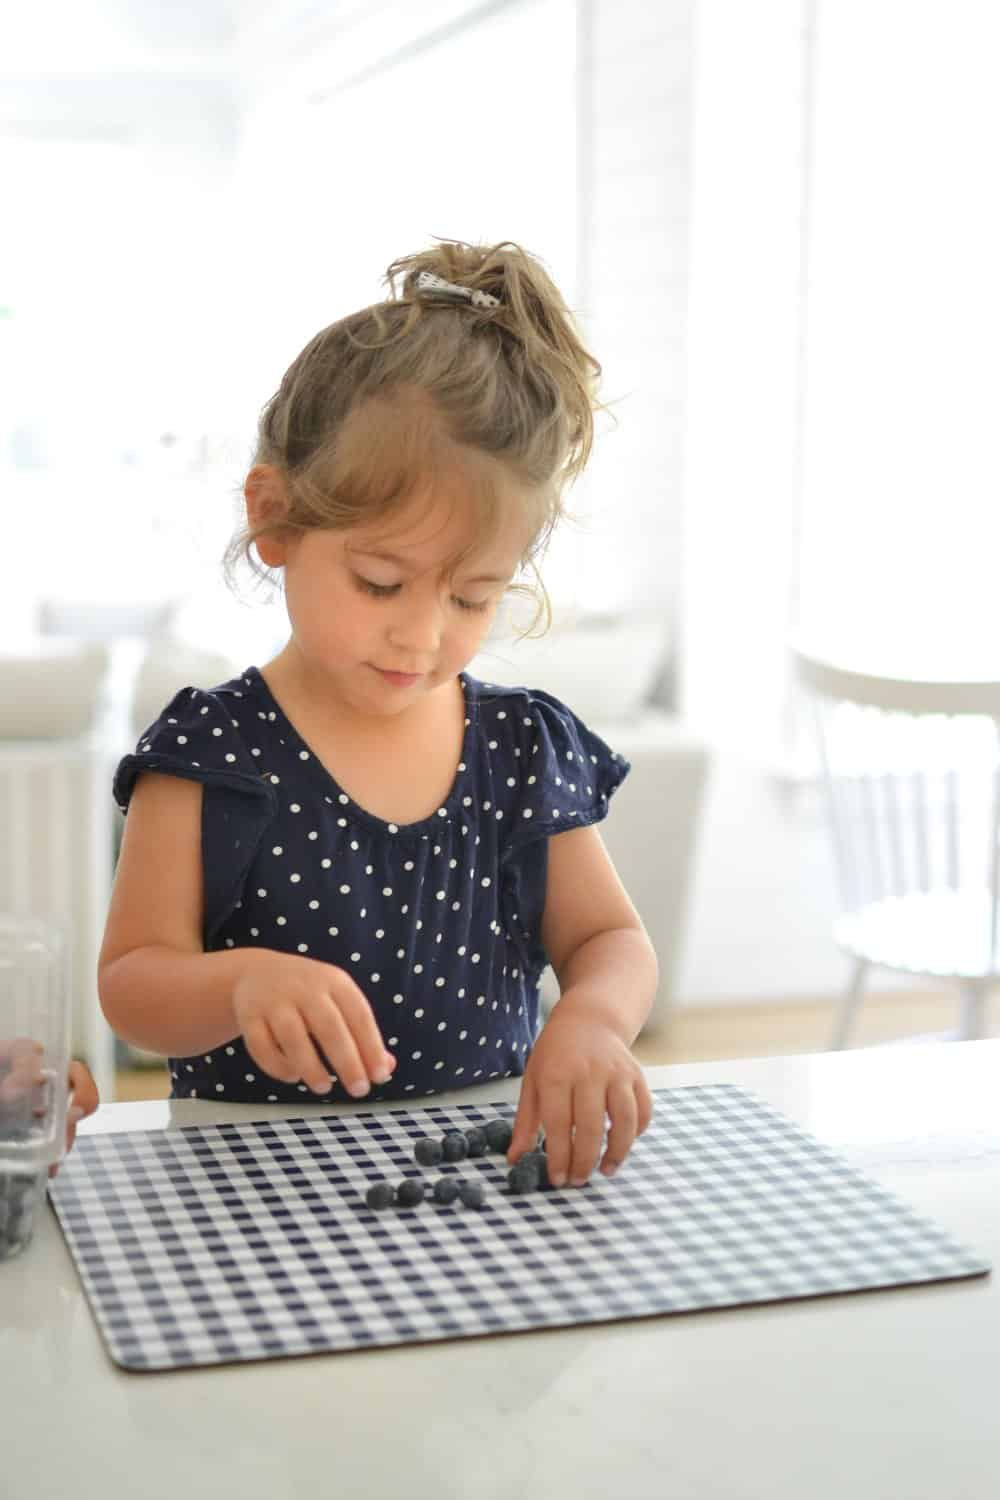 girl counting blueberries on a placemat form Home Centric